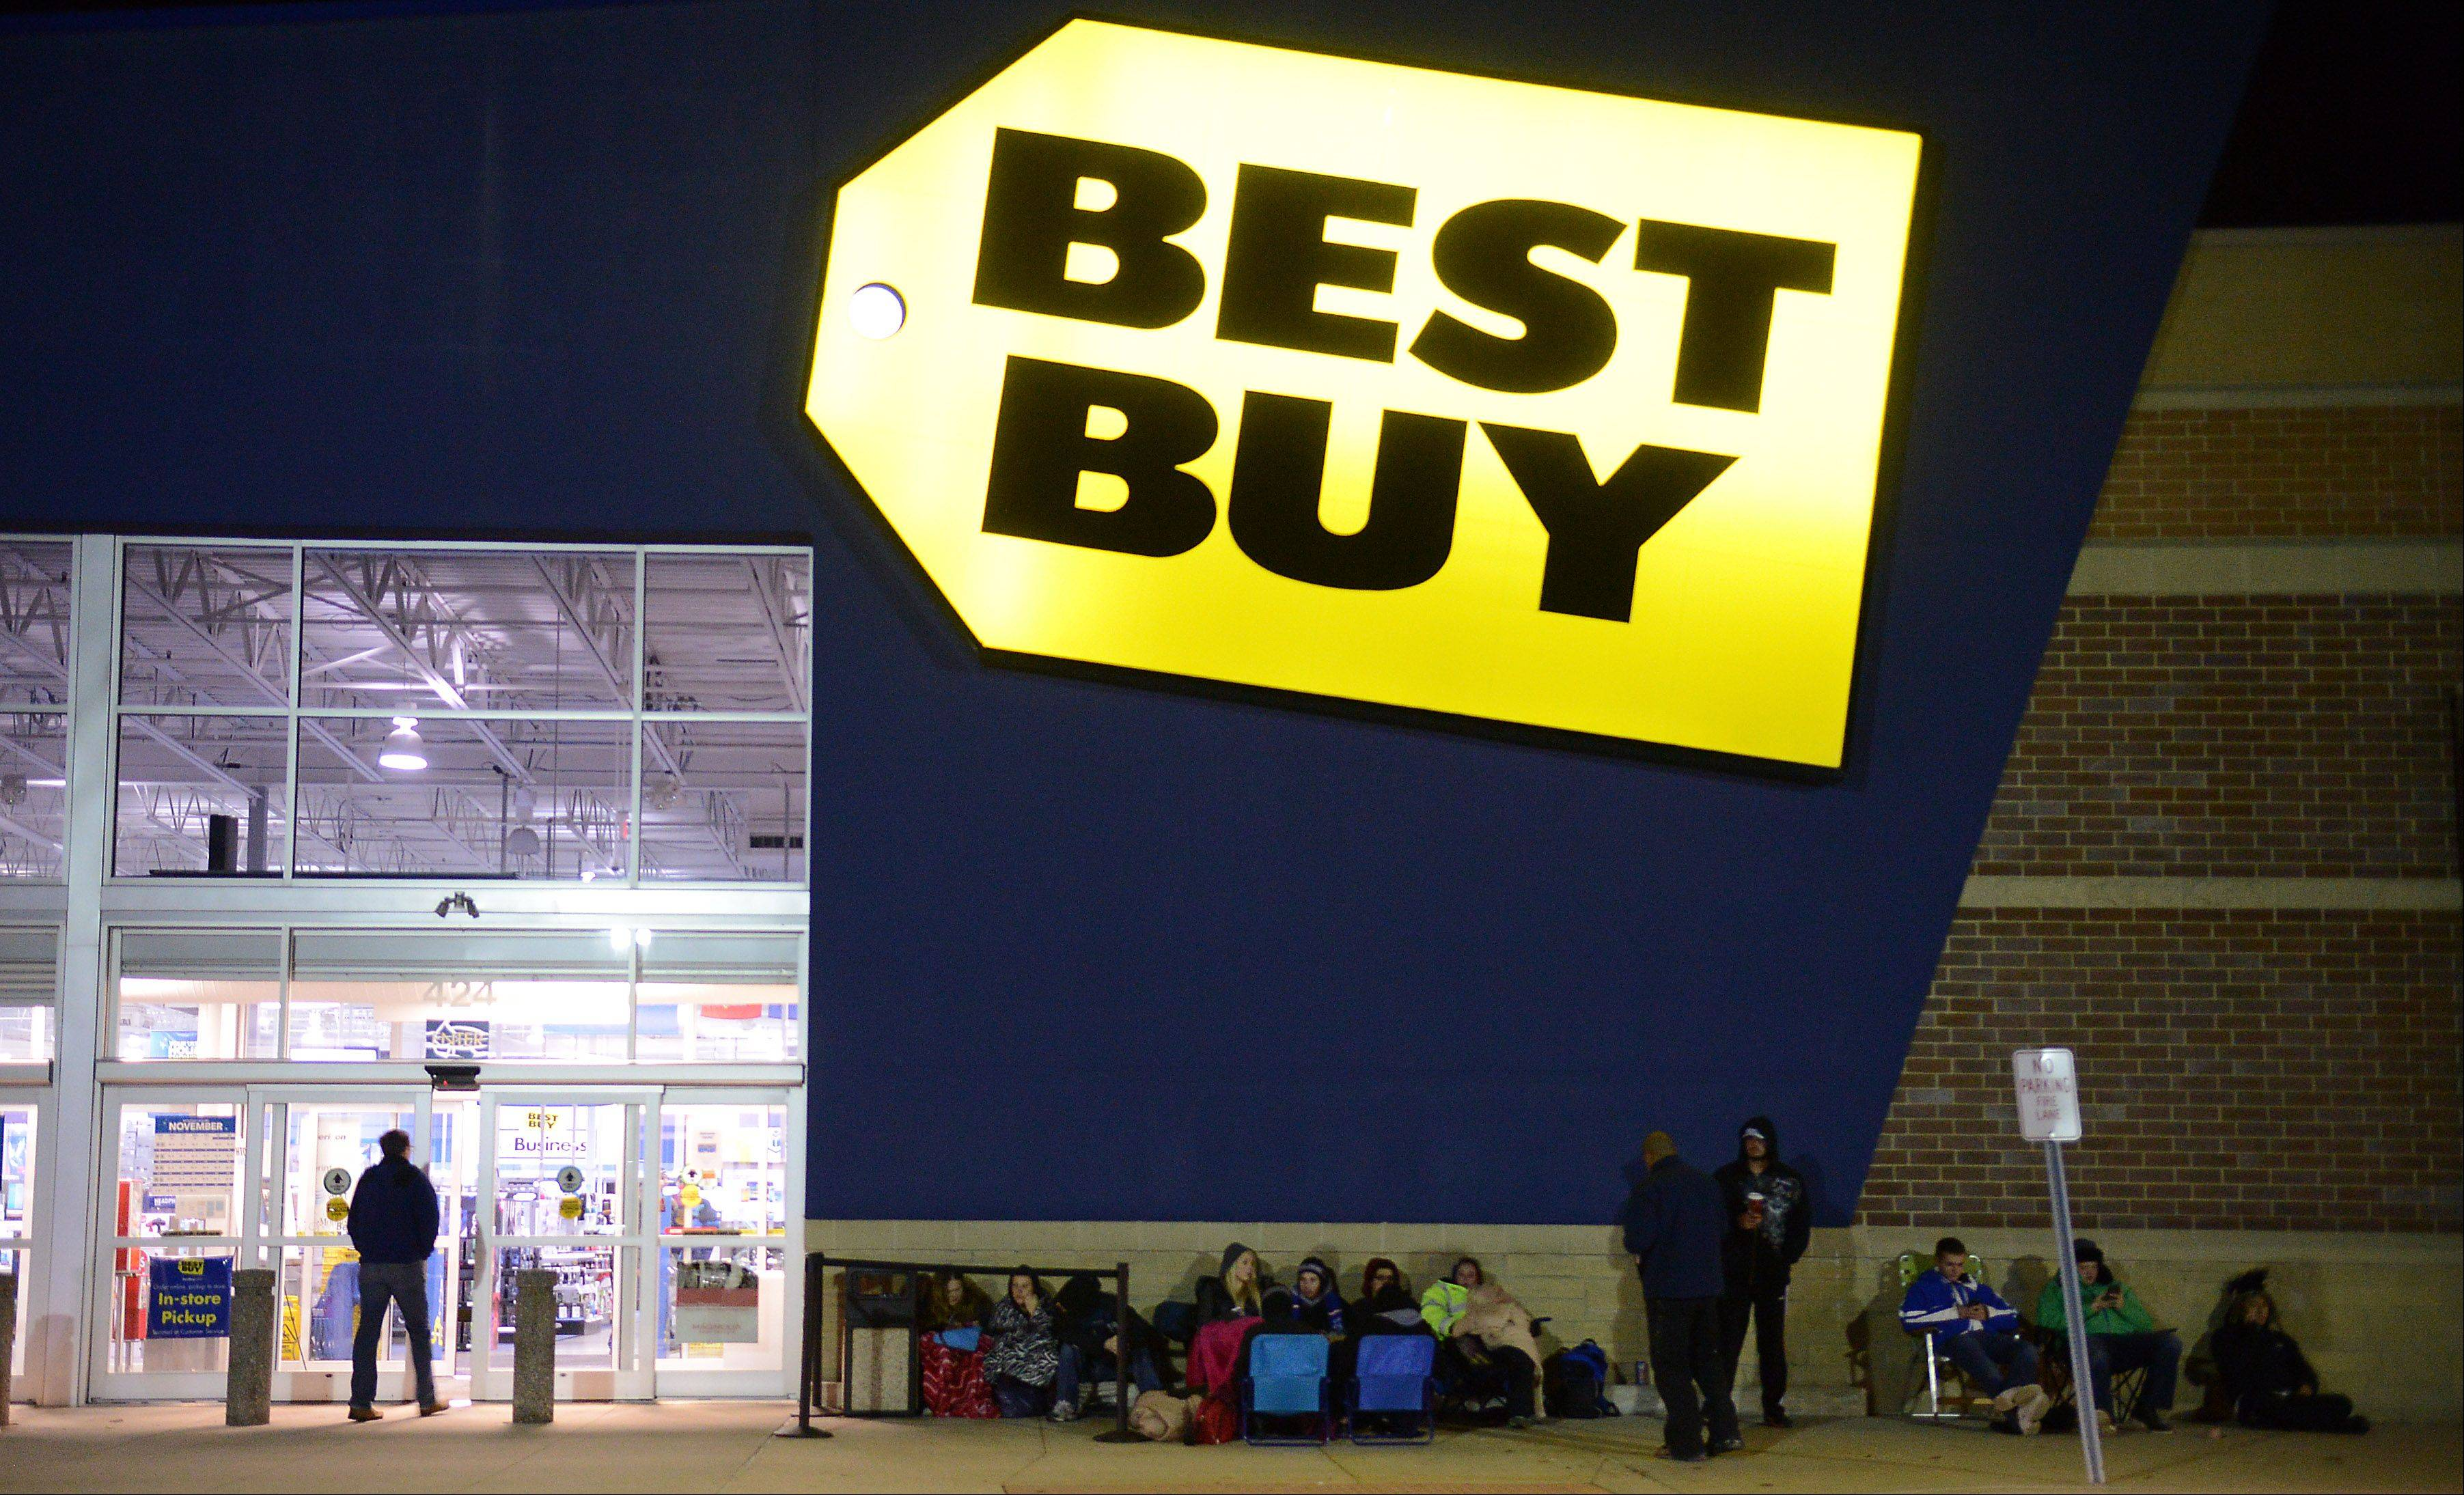 Rick West/rwest@dailyherald.comAbout 15 people wait outside the South Elgin Best Buy Thursday night to be among the first to buy the new Playstation 4 being released at midnight. The first people in line got there at 11:30 am.